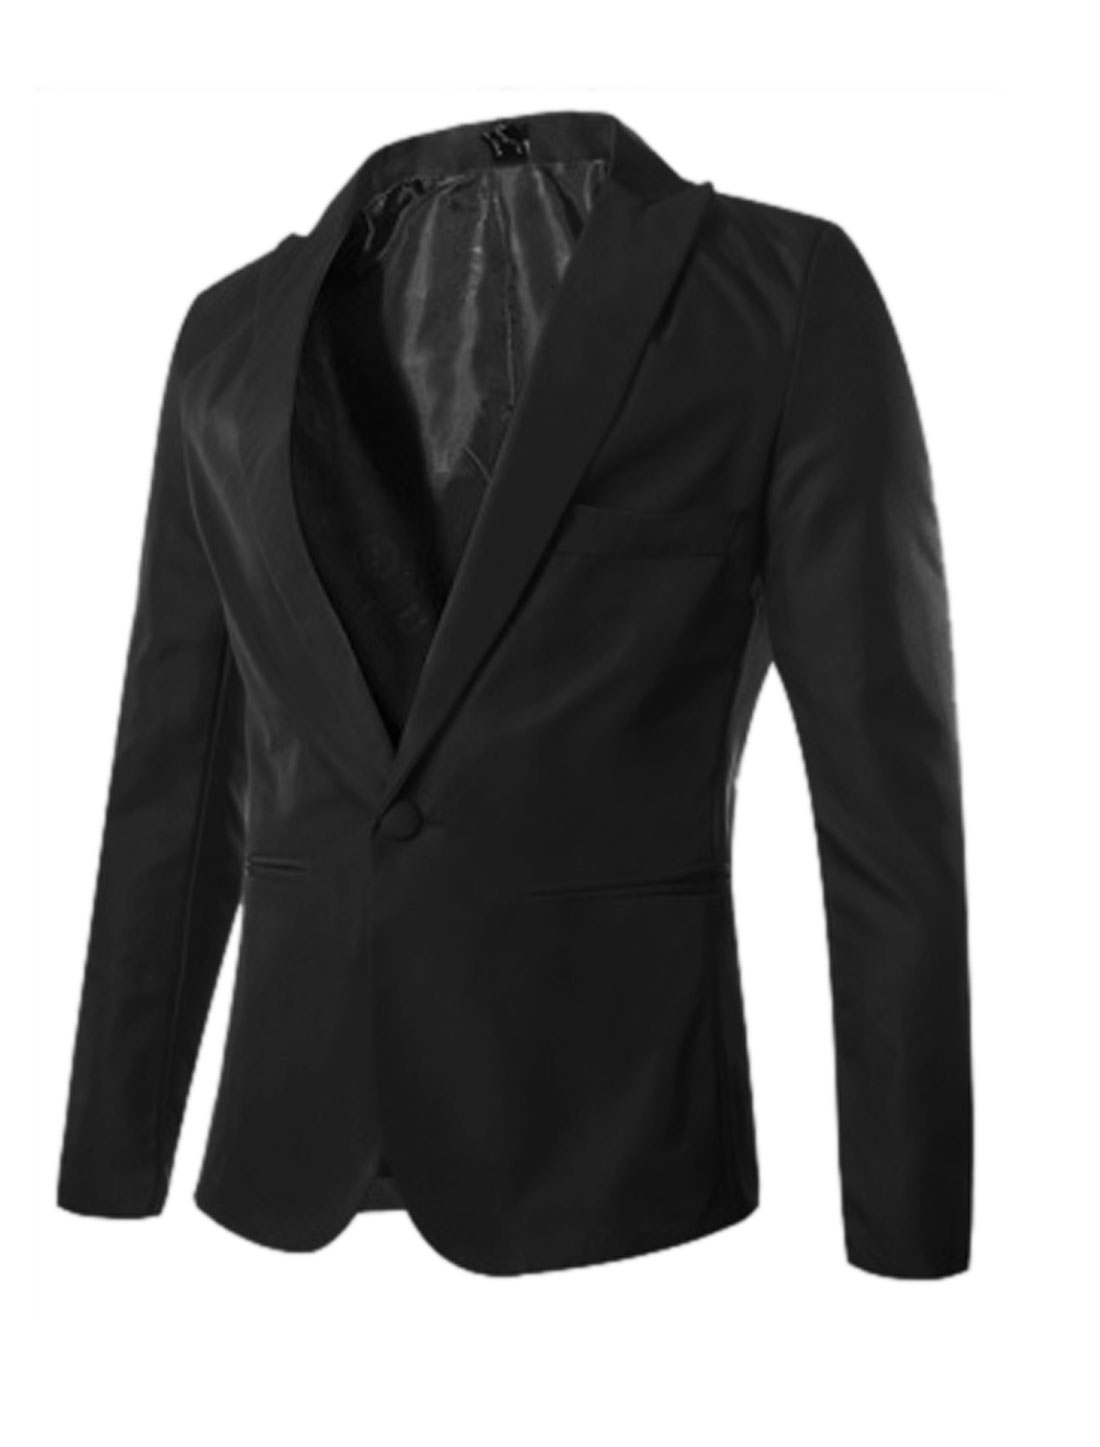 Men Peaked Lapel One Button Closed Blazer Jacket Black M